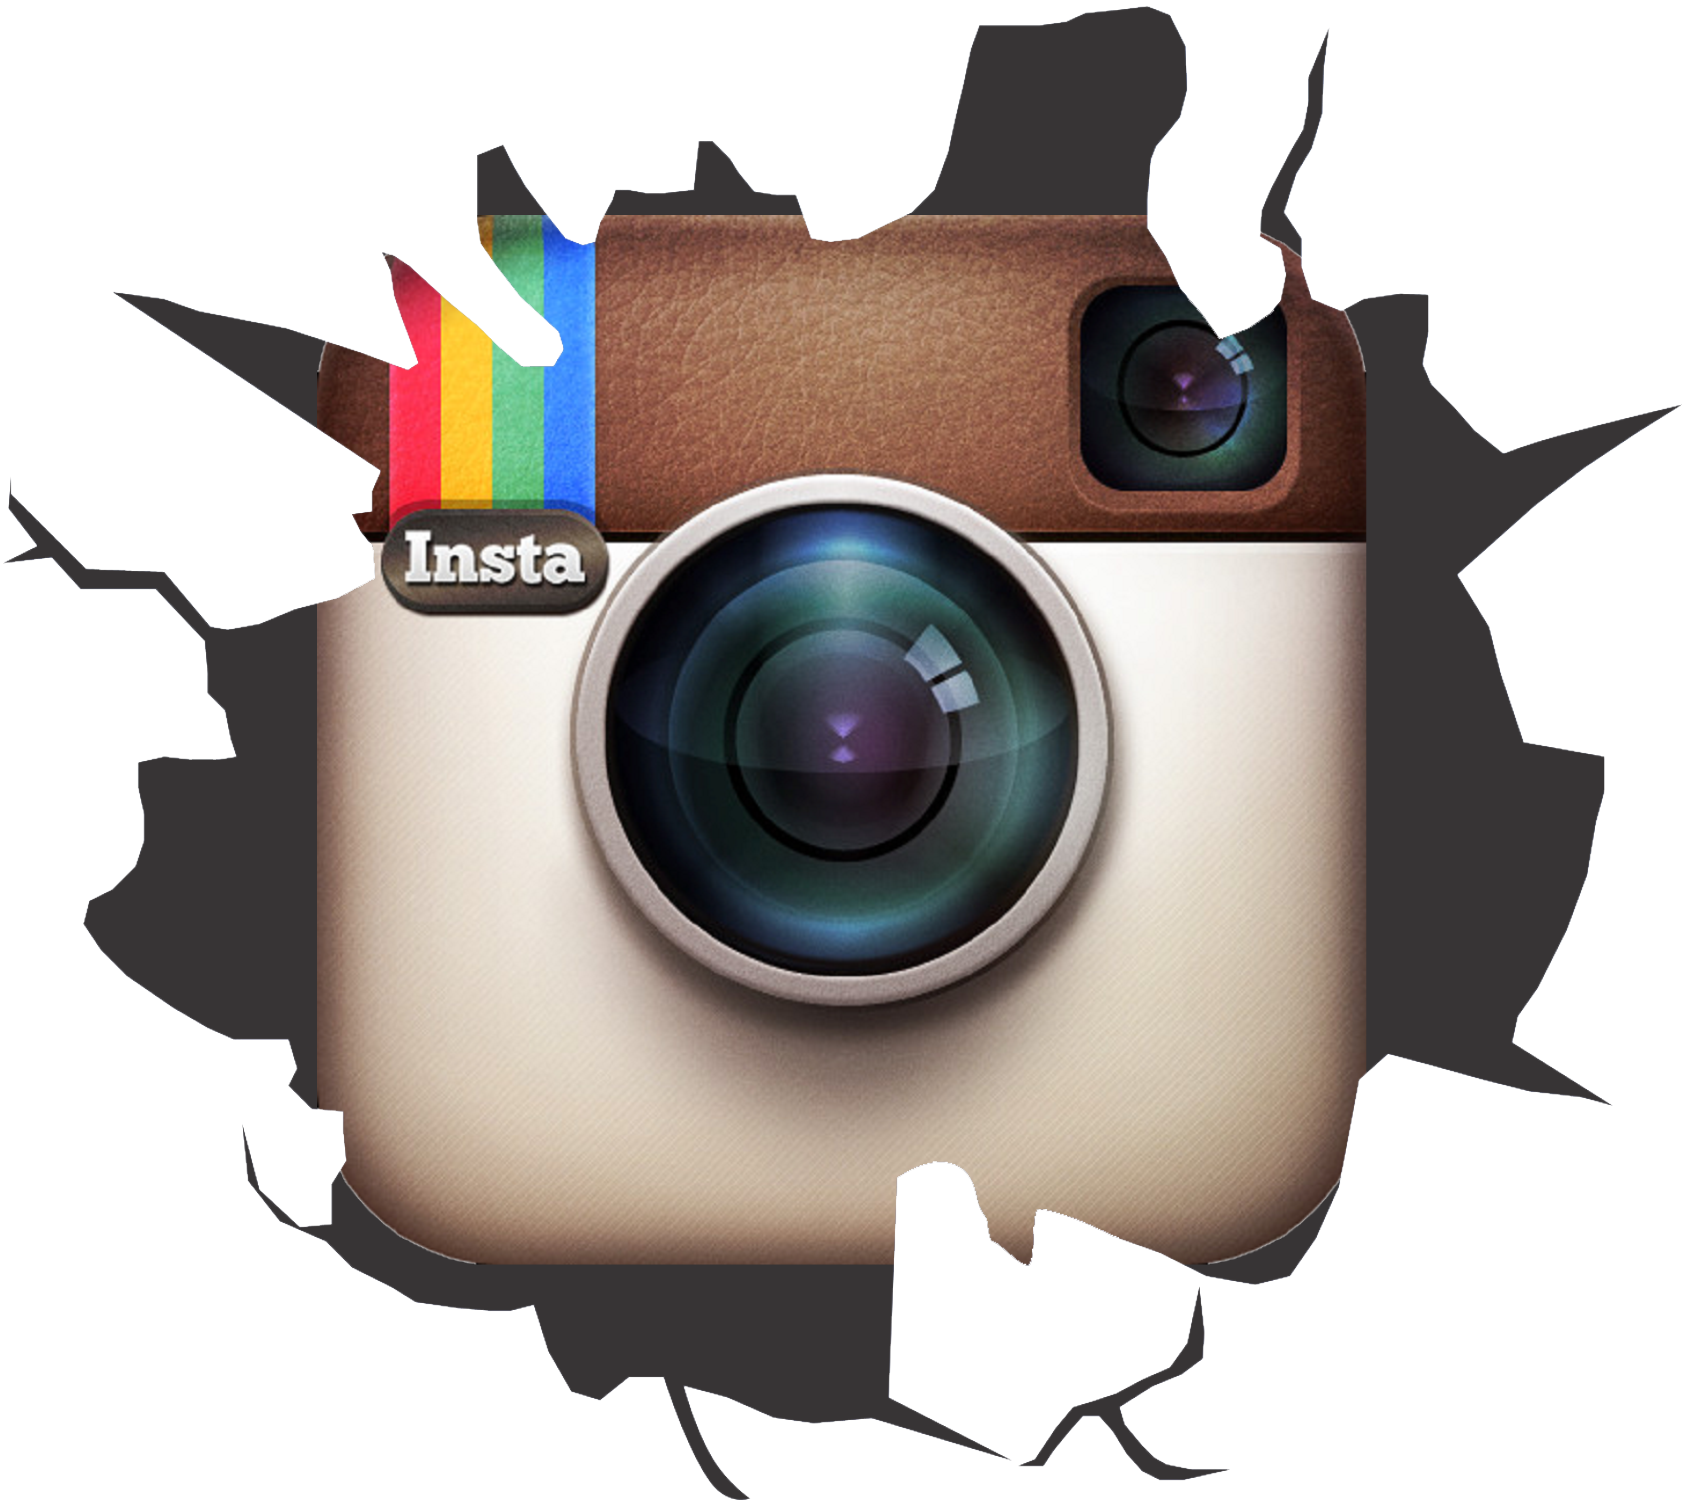 instagram logo transparent Google Search Insta Logo